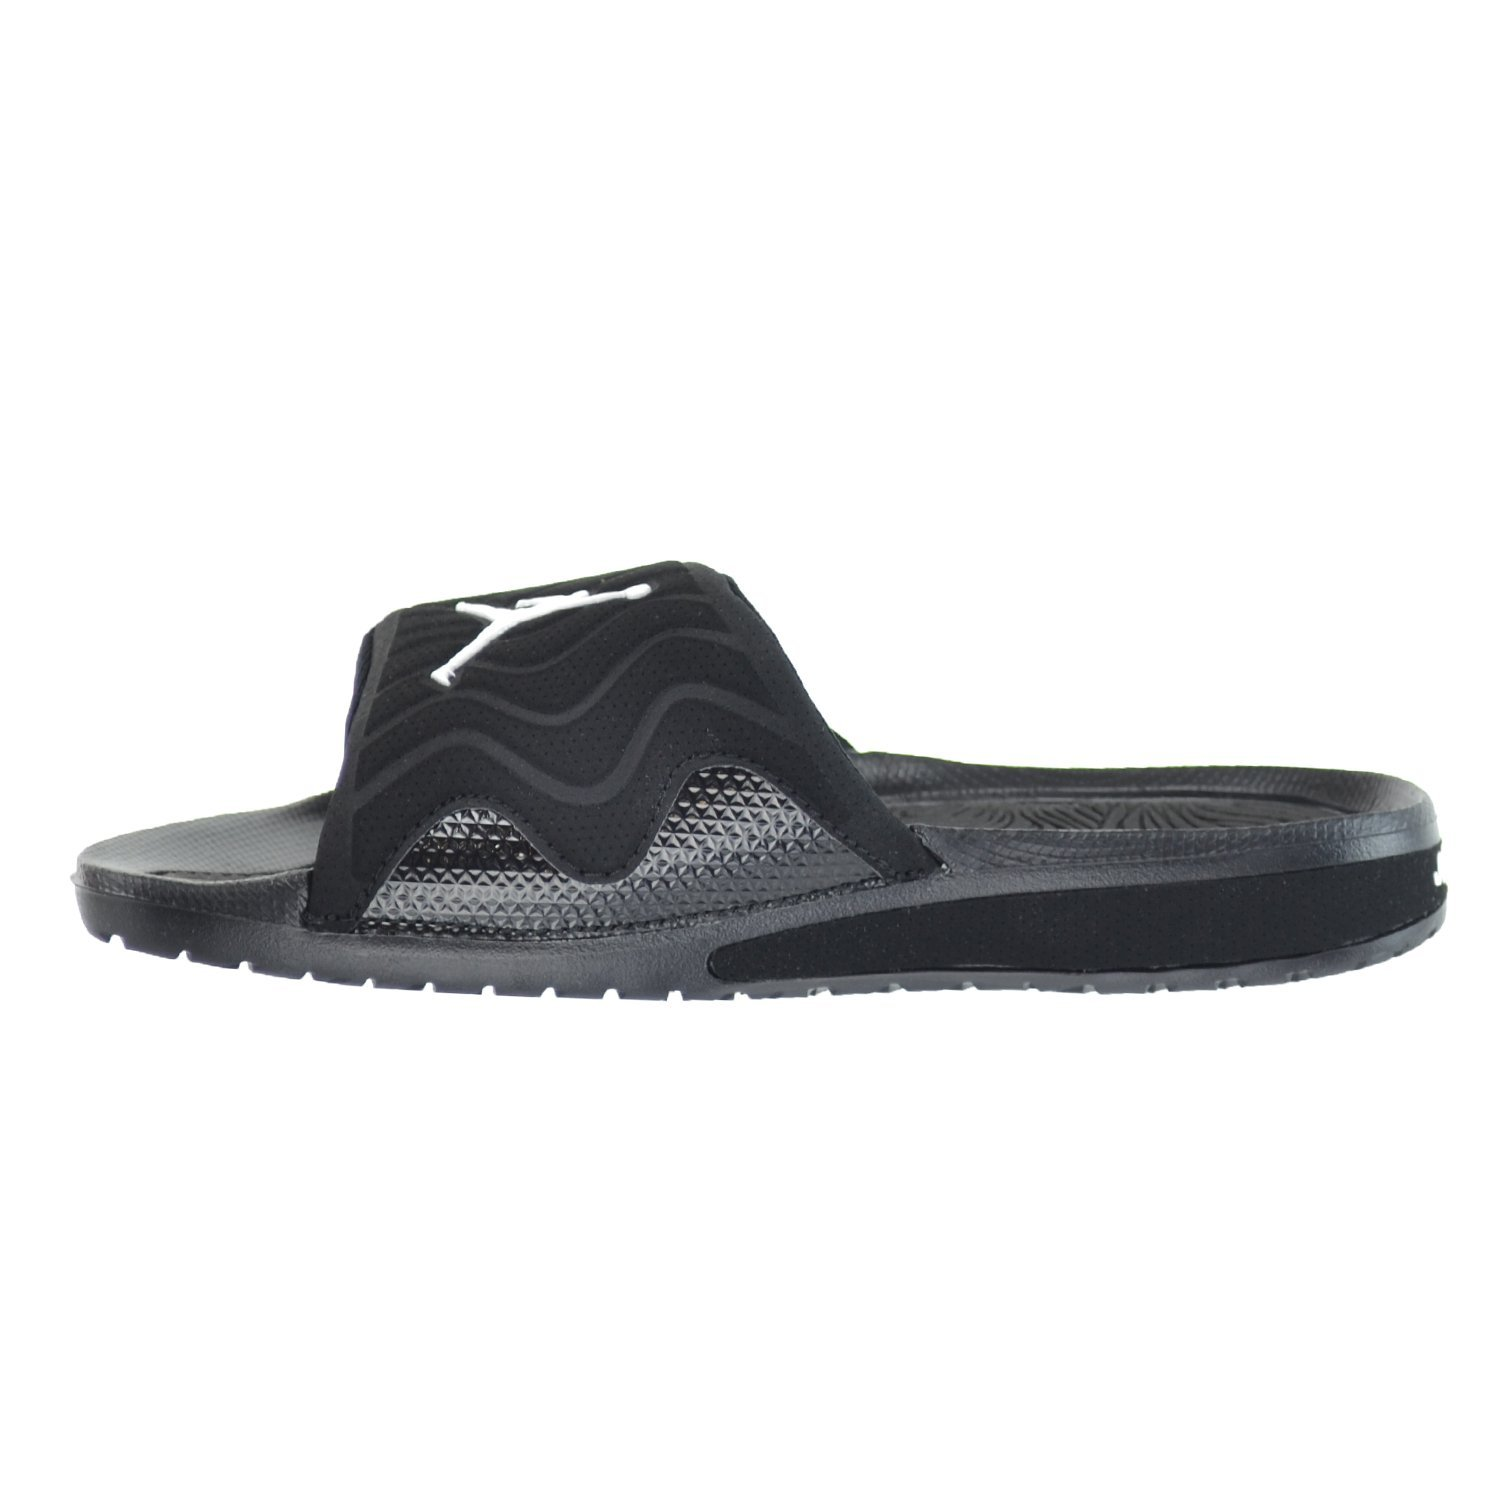 0c9d868f260d Jordan Hydro 4 BG Big Kid s Sandals Black White Black 705171-010 Black  Size  7 M US Big Kid  Amazon.co.uk  Shoes   Bags